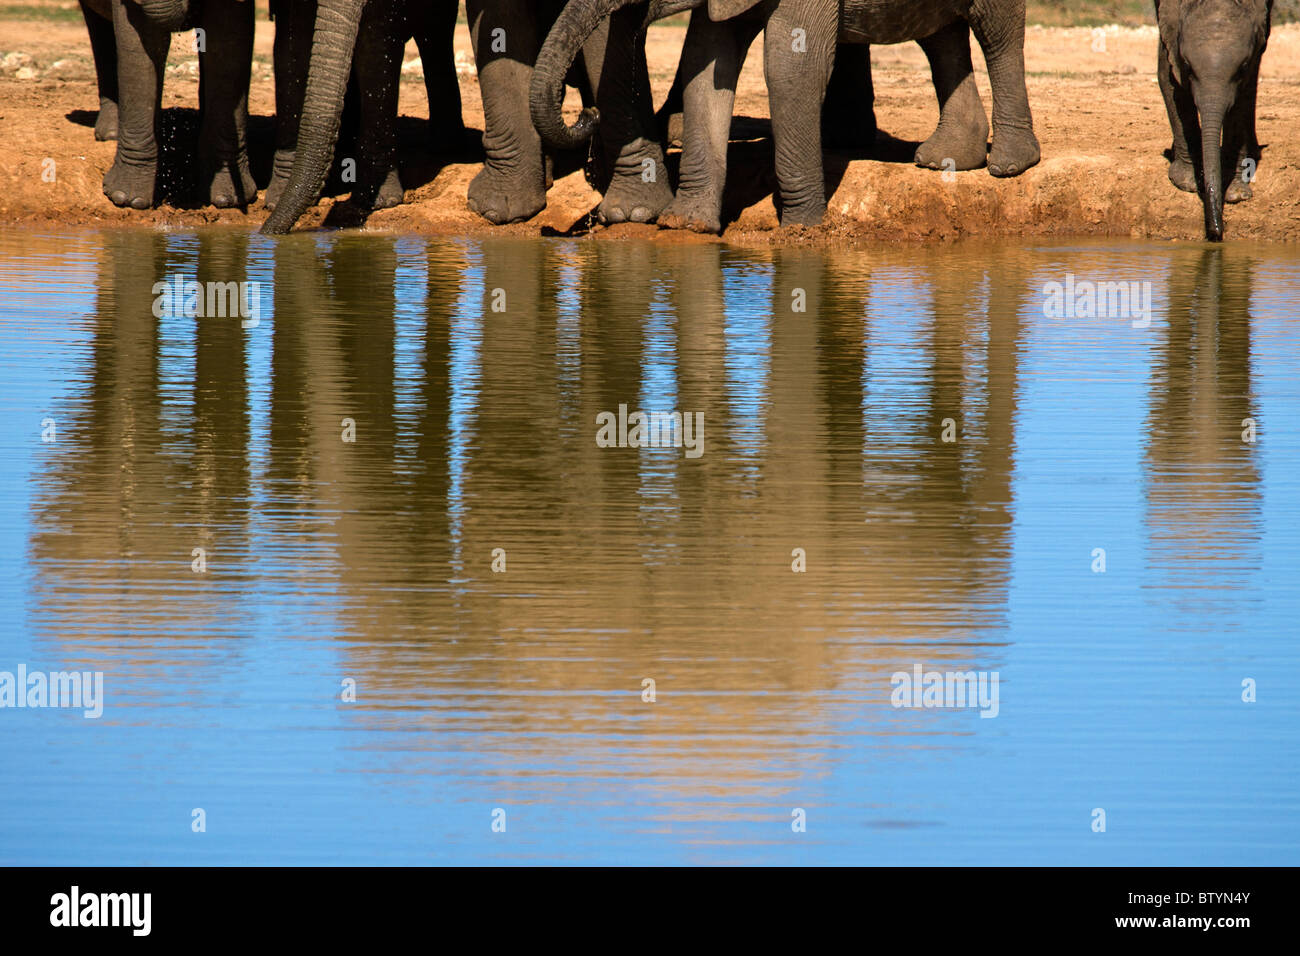 A thirsty family of big Elephant drink fresh water in a big puddle. The new born on the right is risking to go in - Stock Image